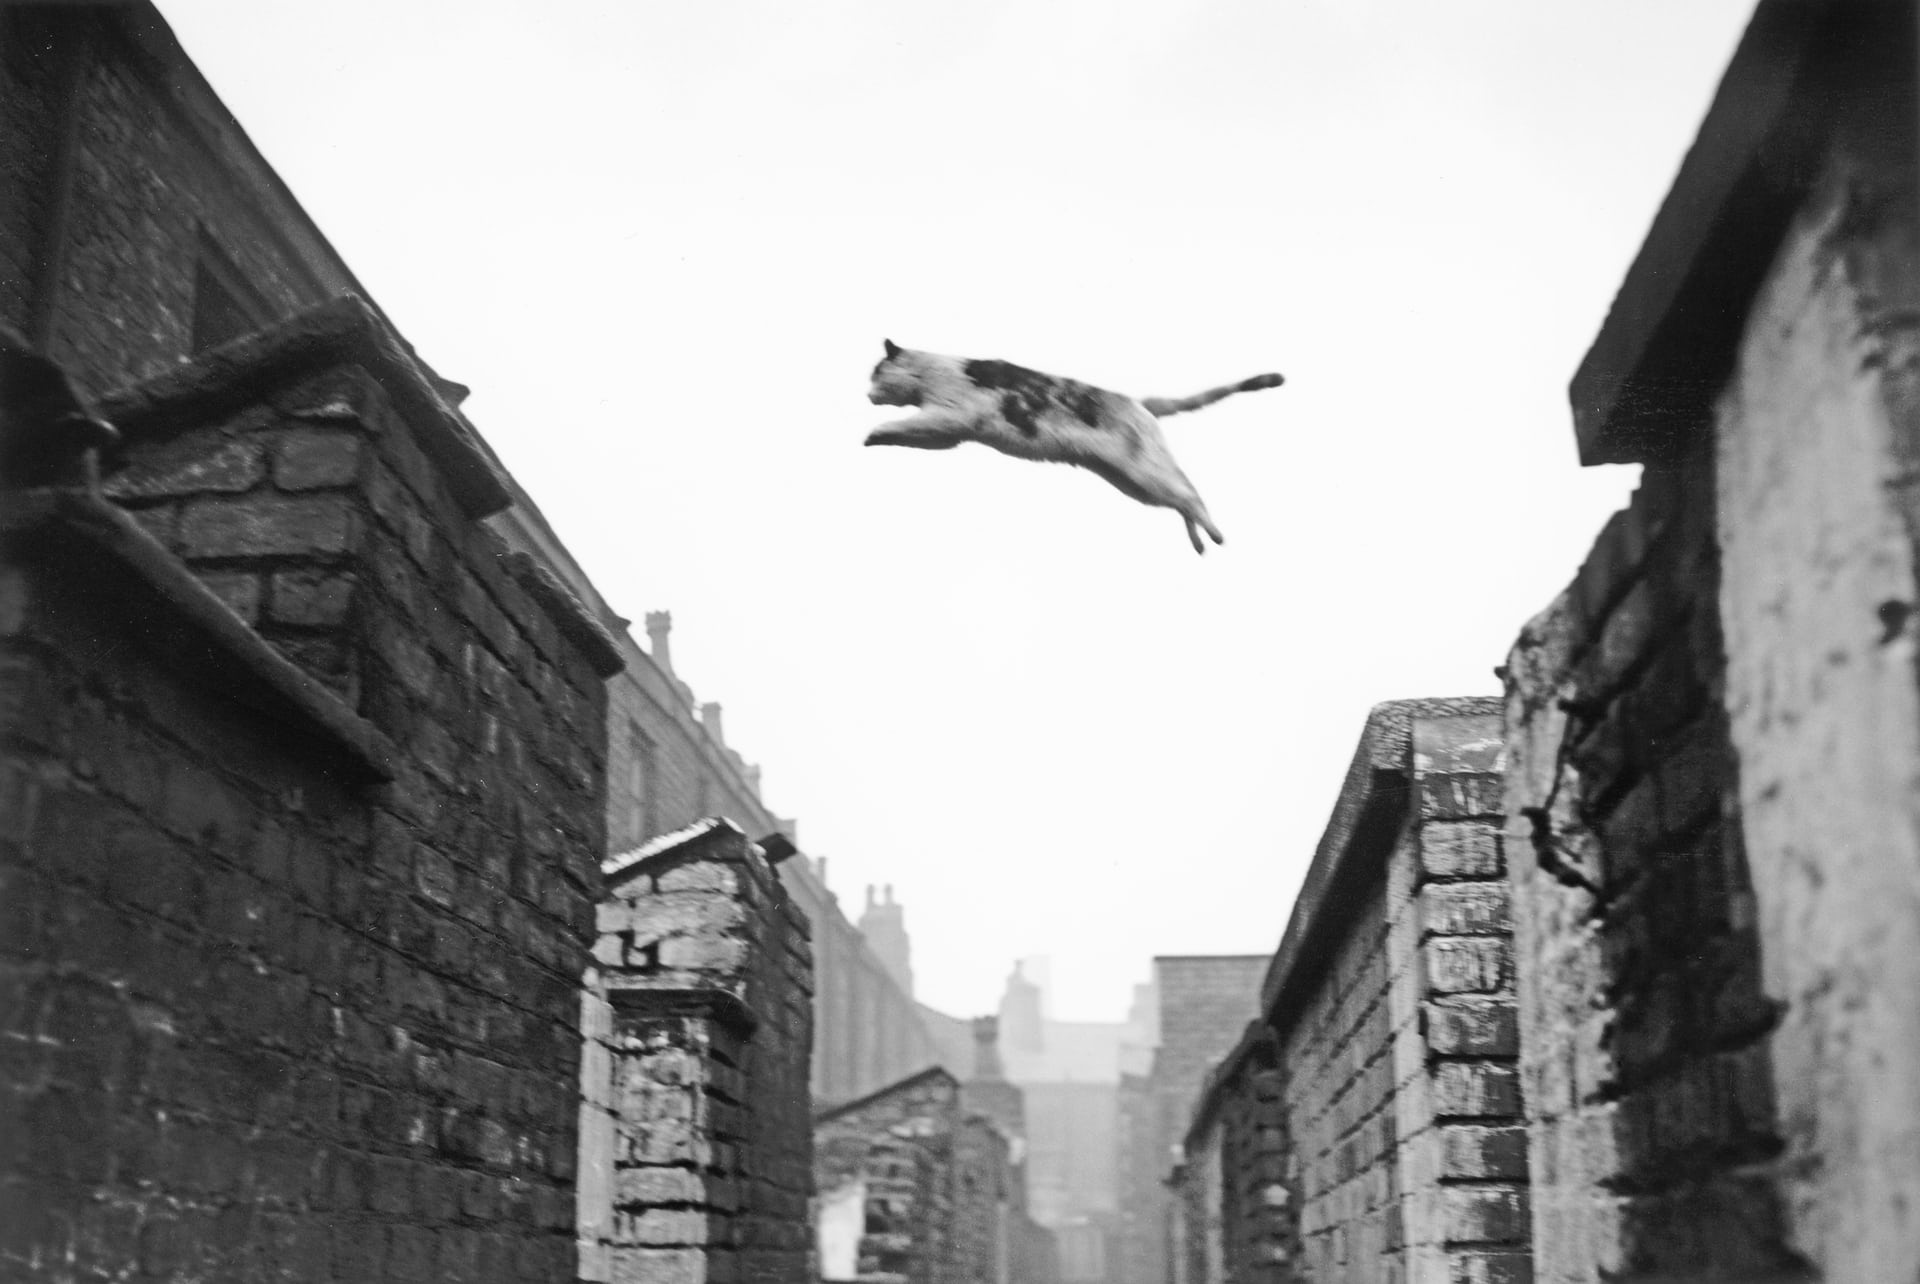 Cat Jumping, Salford, 1957